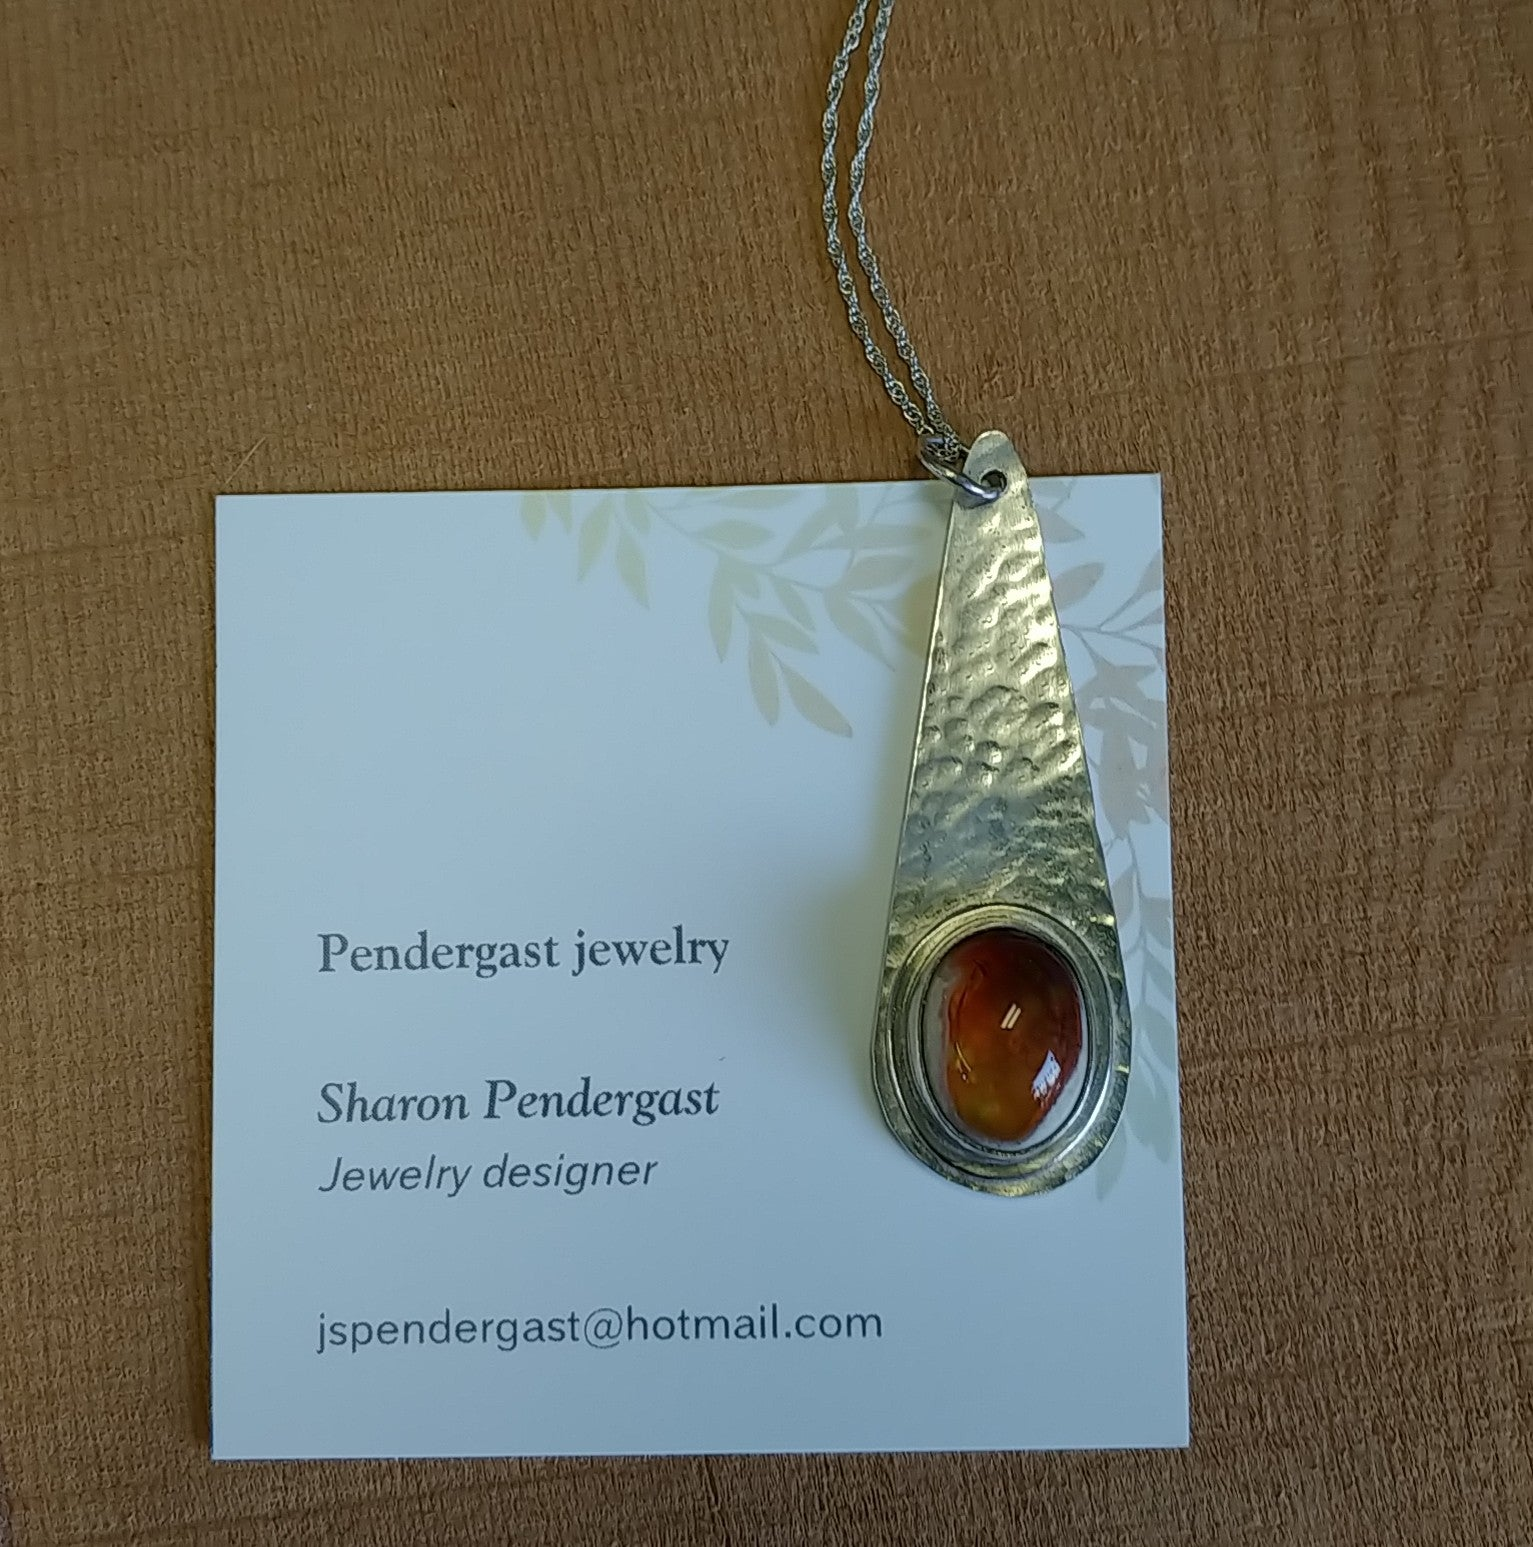 Pendergast jewelry sterlijg and fire opal necklace